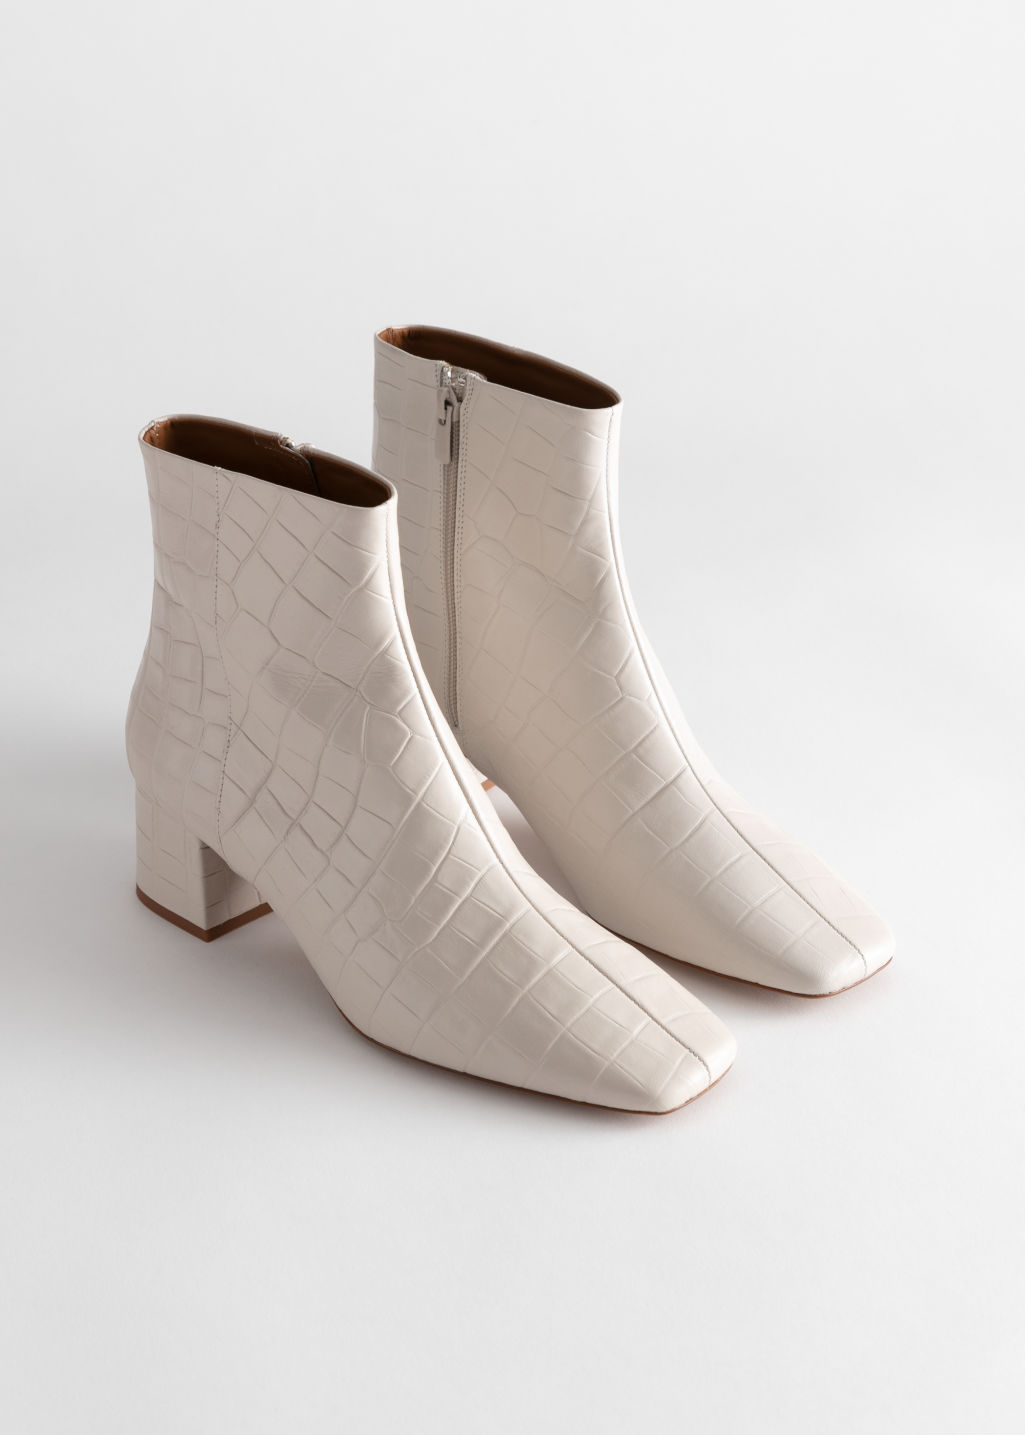 & Other Stories Square Toe Boots £135